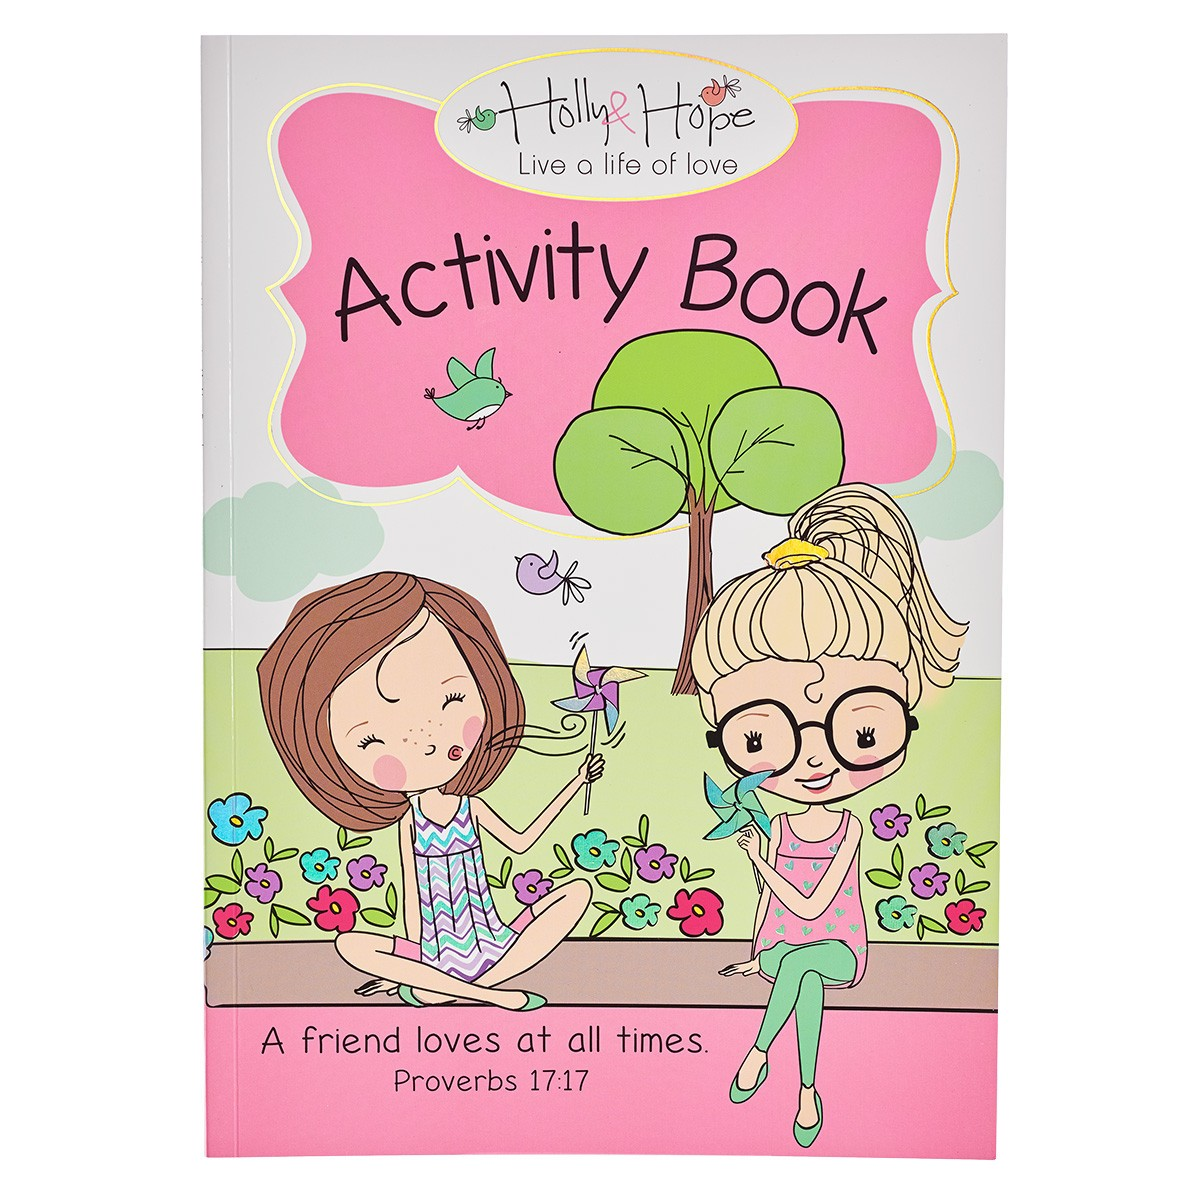 Activity Book Holly & Hope AYAT Online